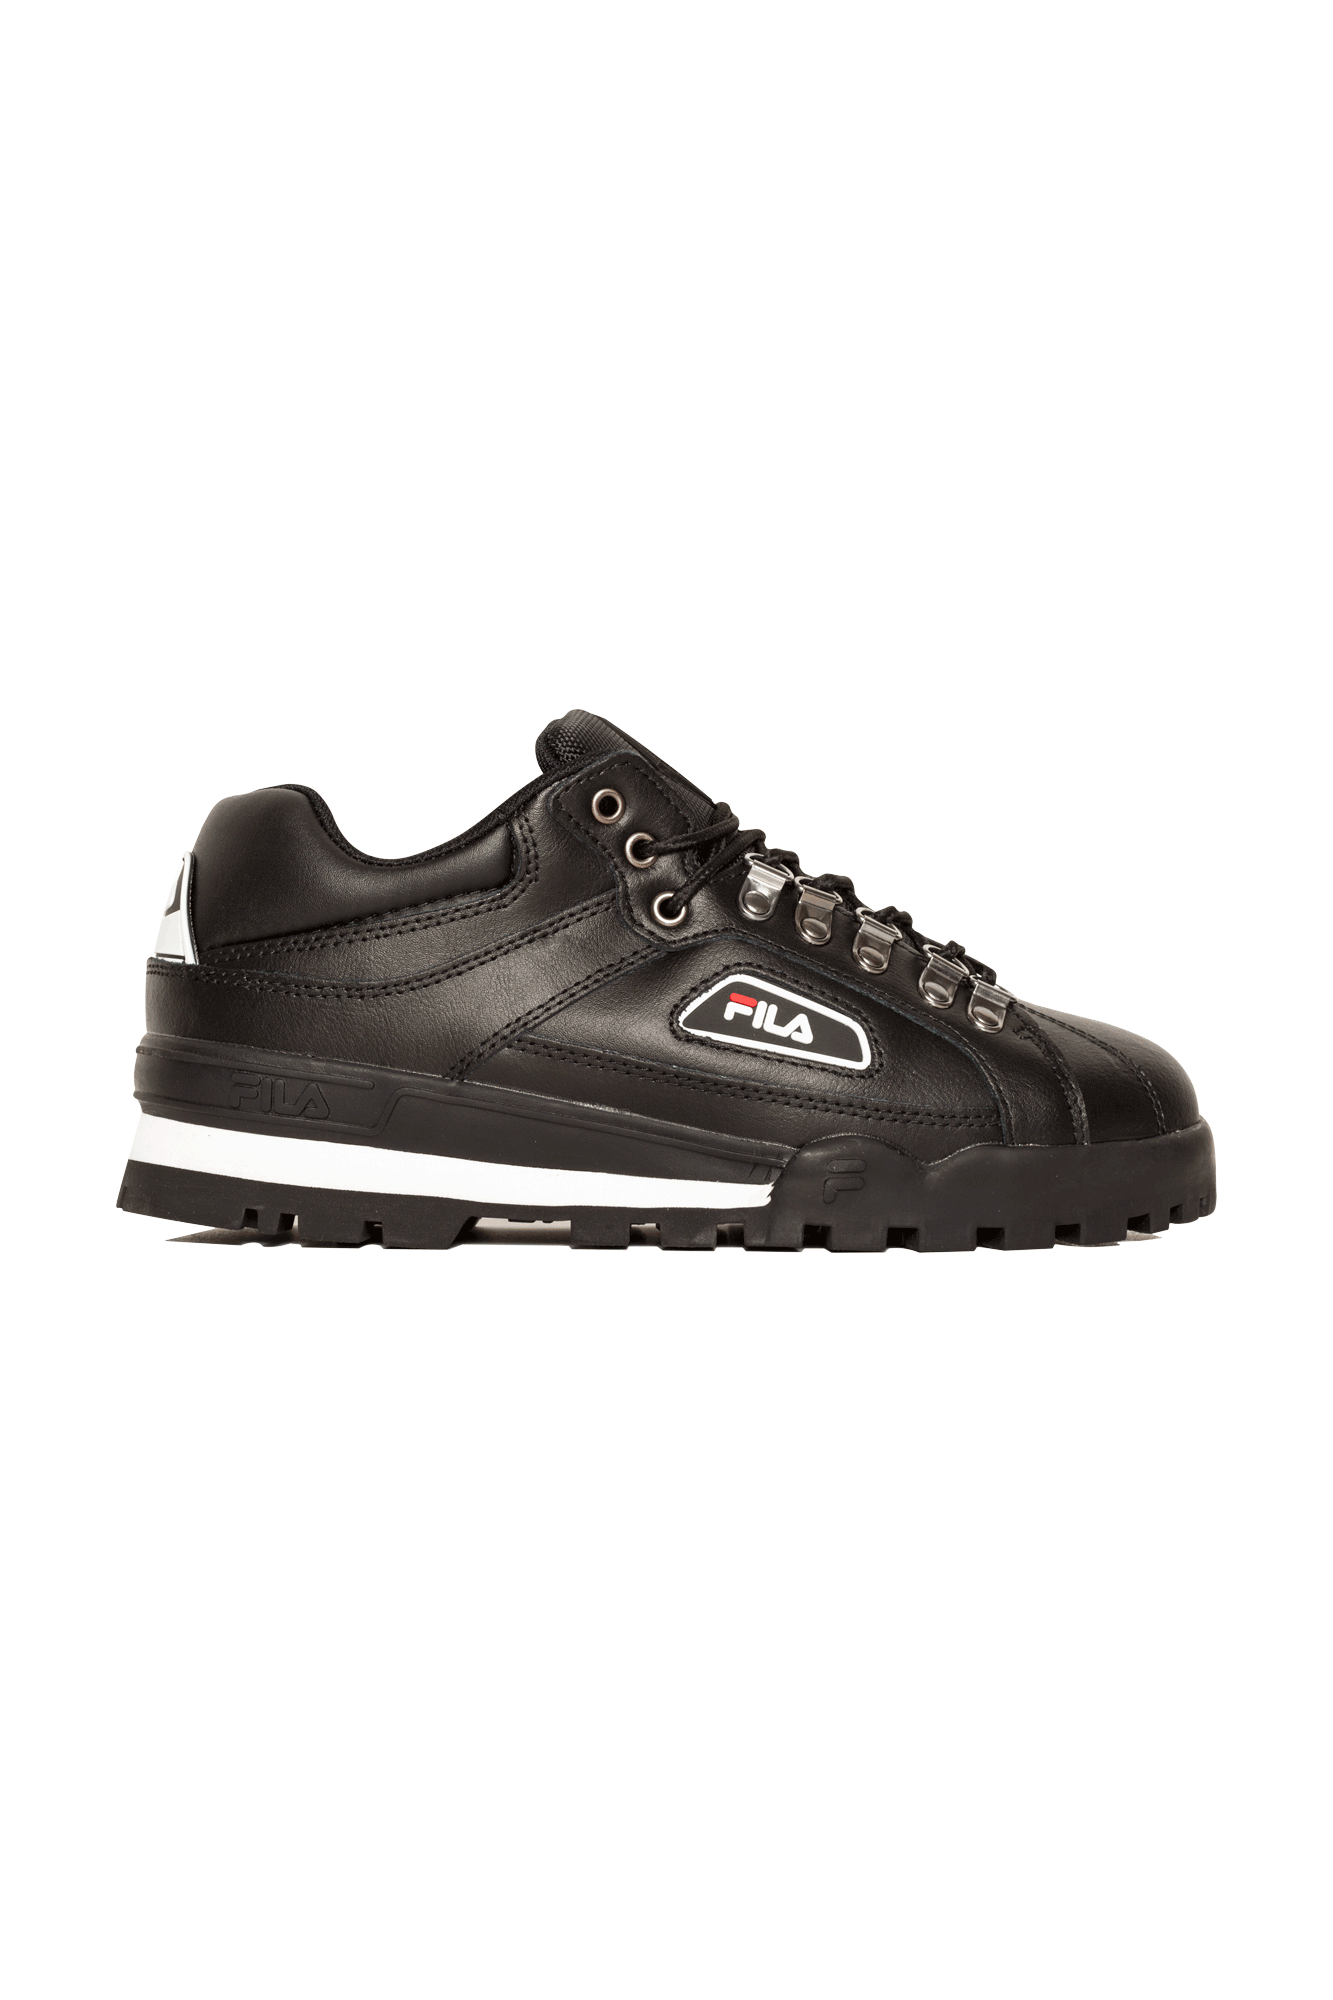 Fila Sneakers Trailblazer L Woman Black 1010482#000#25Y#4 - One Block Down